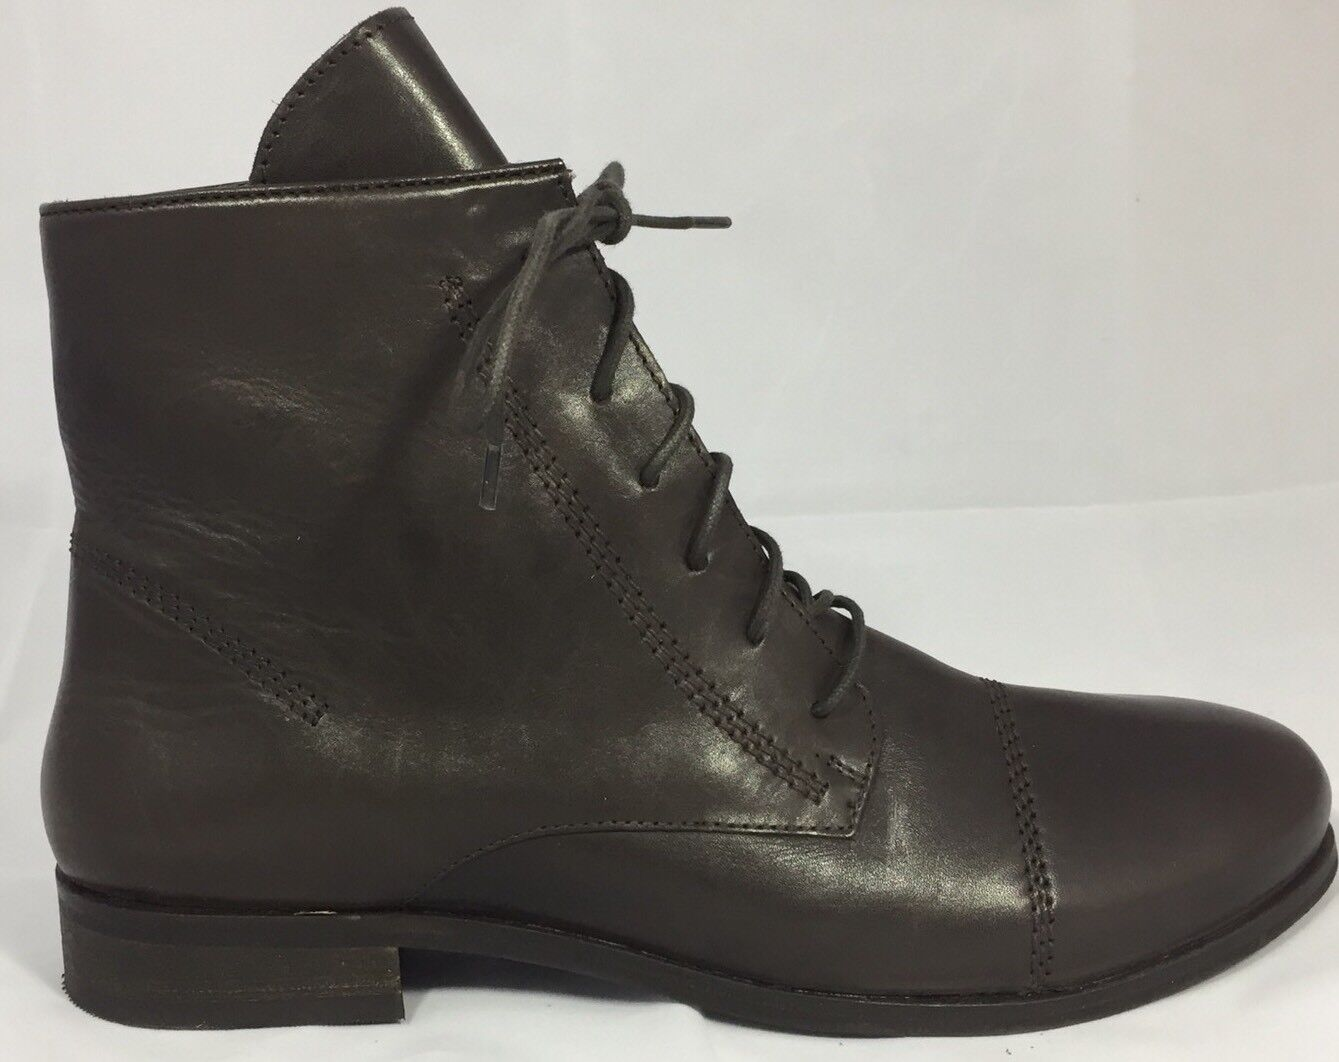 New Sketchers MOD Chocolate Leather Women Combat Military Boots 7.5 Lace Block